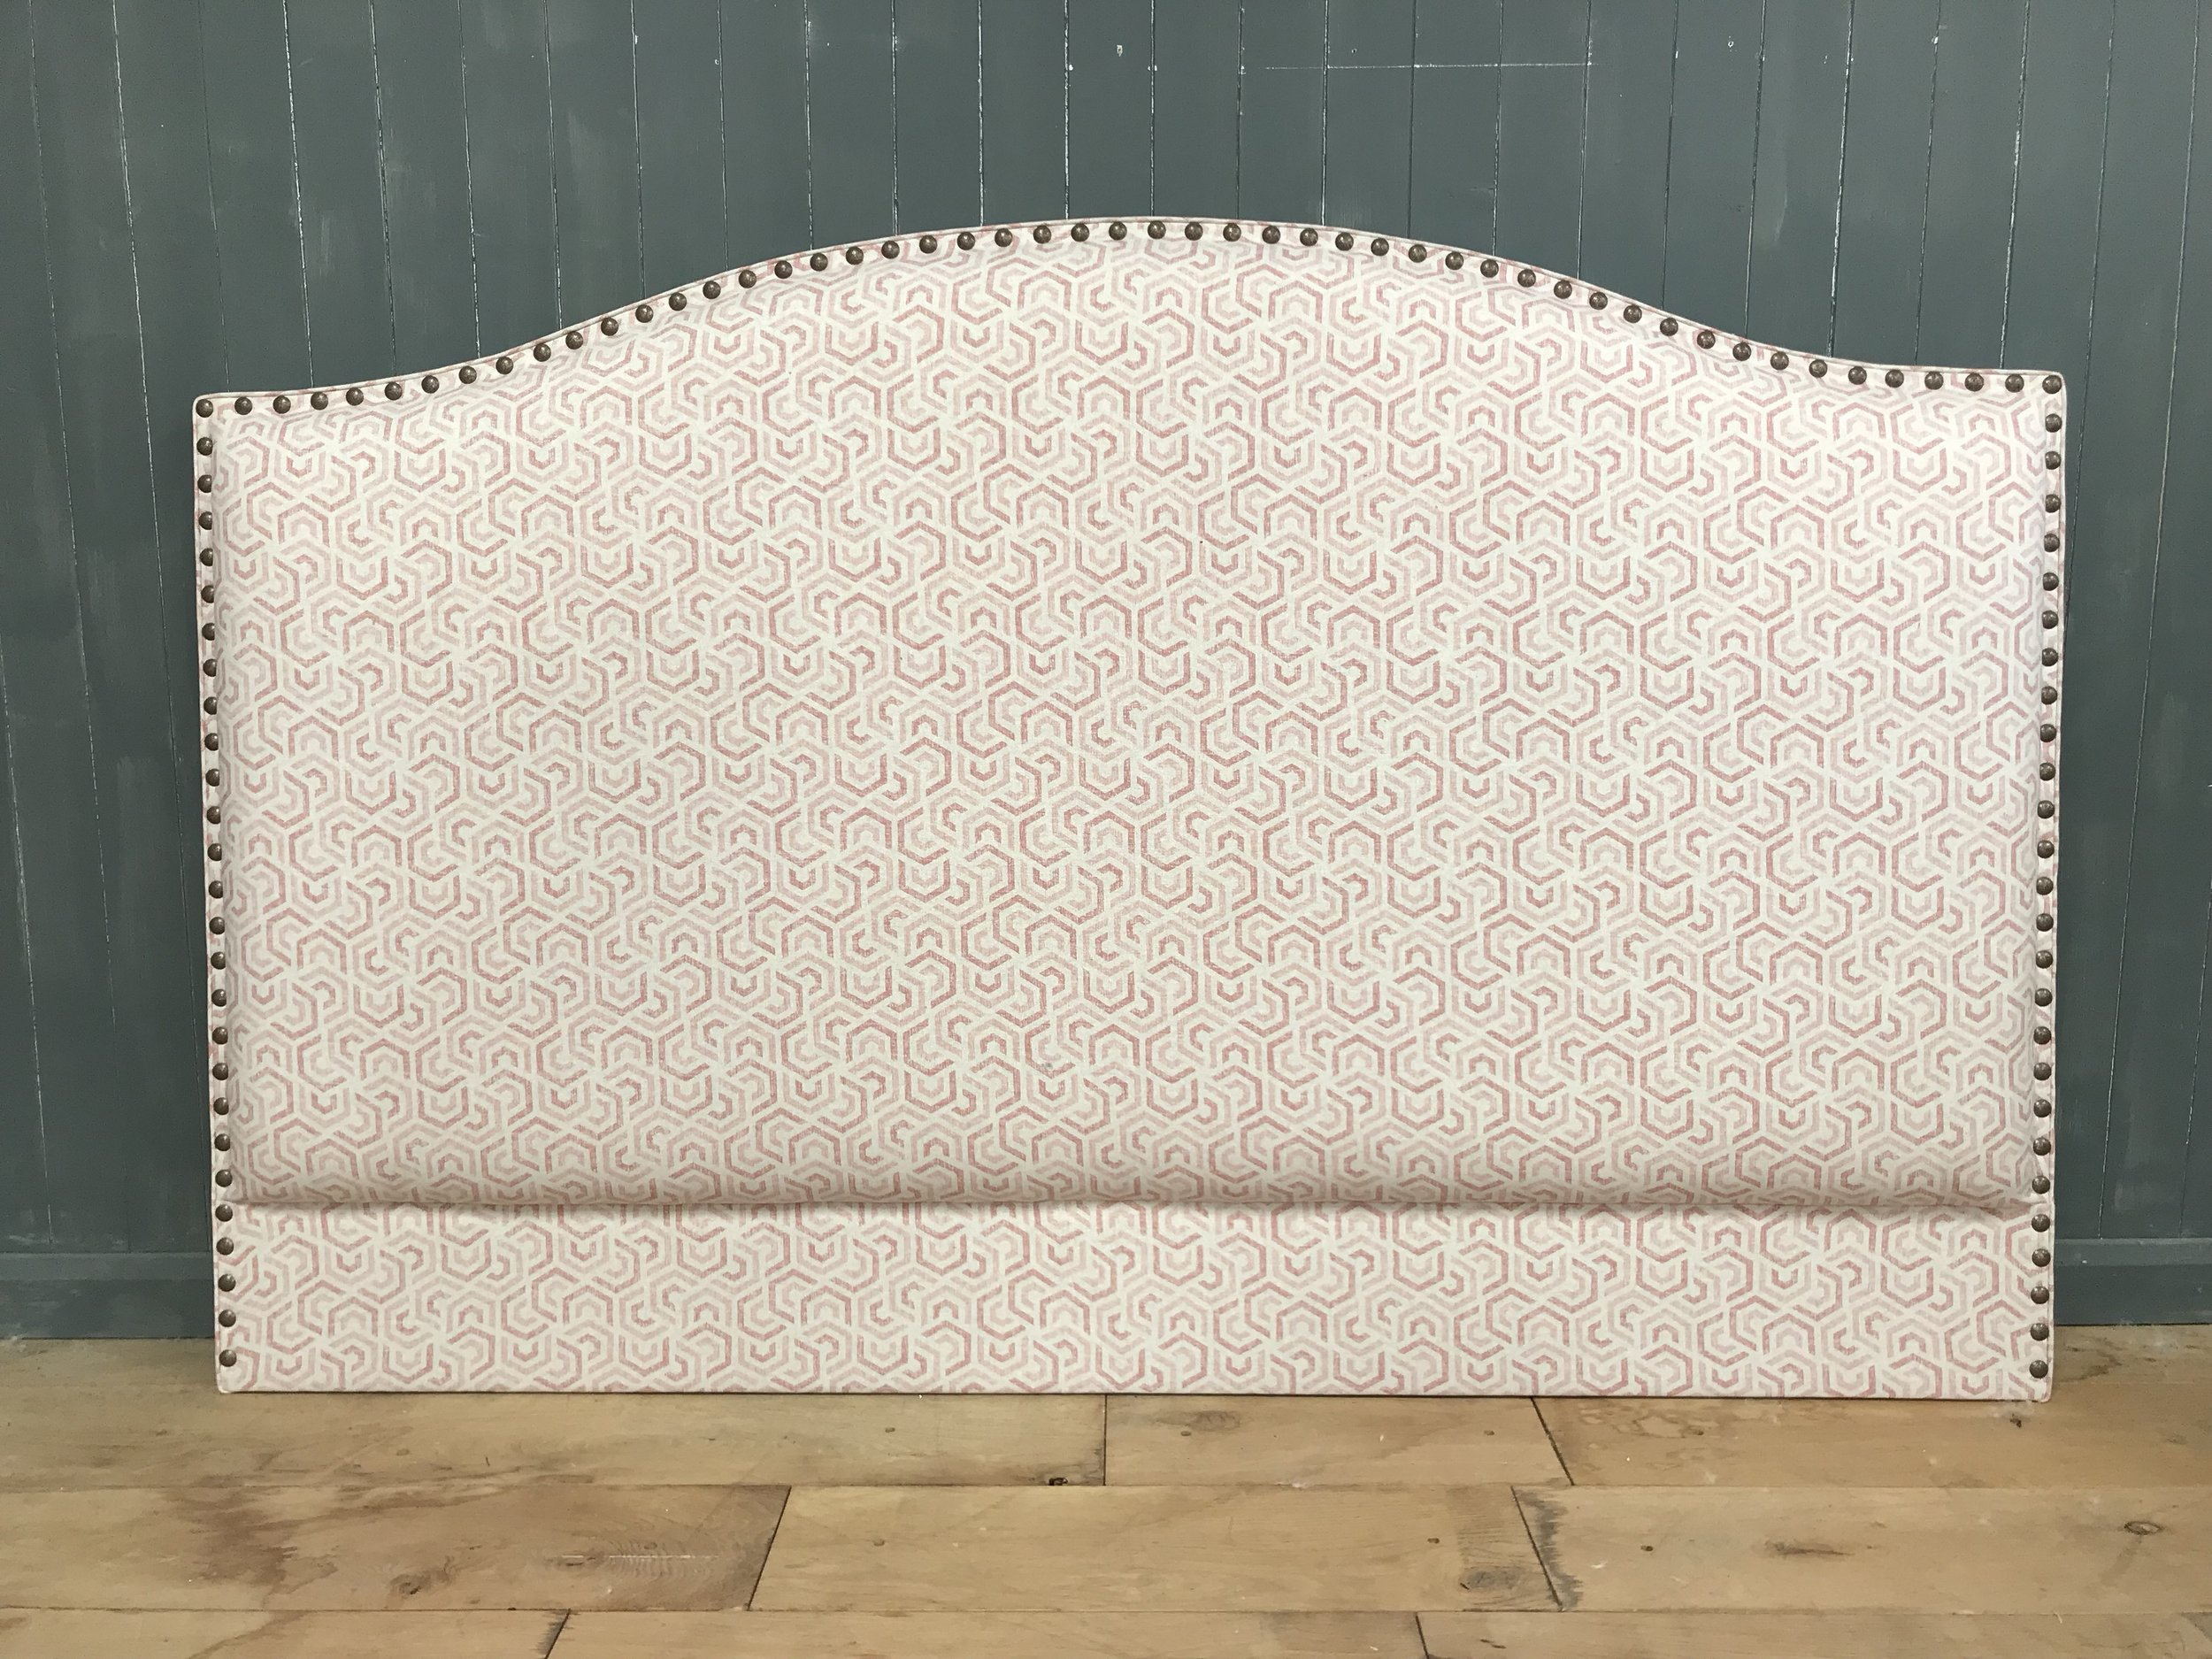 Bespoke Upholstered Headboard - space stud border